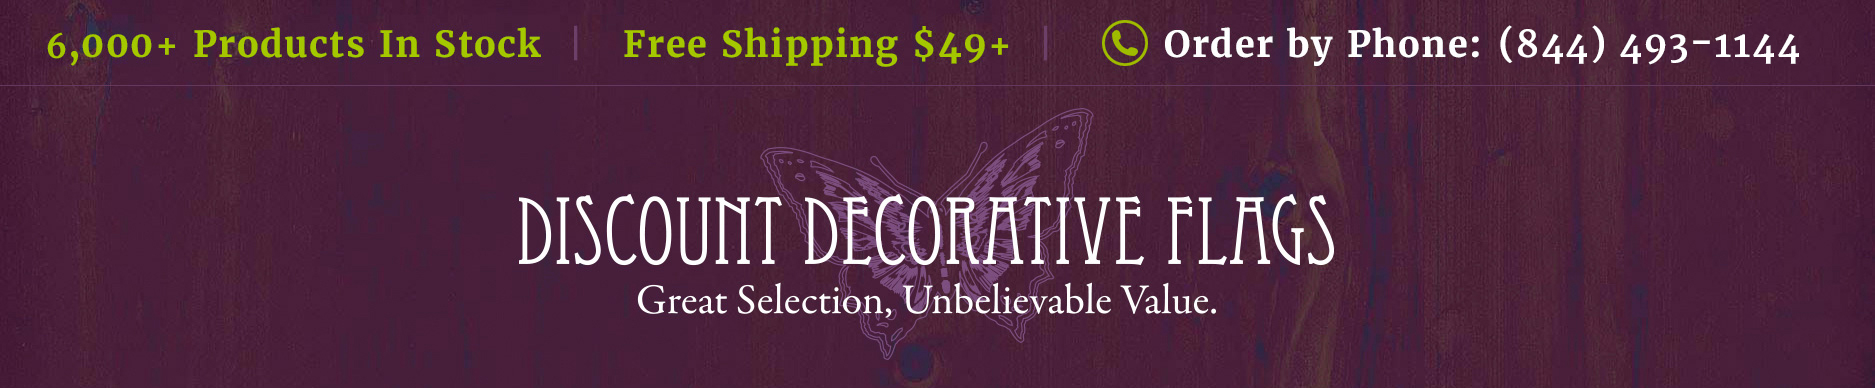 Discount Decorative Flags Your Coupon Inside Save Big On Briarwood Lane Milled